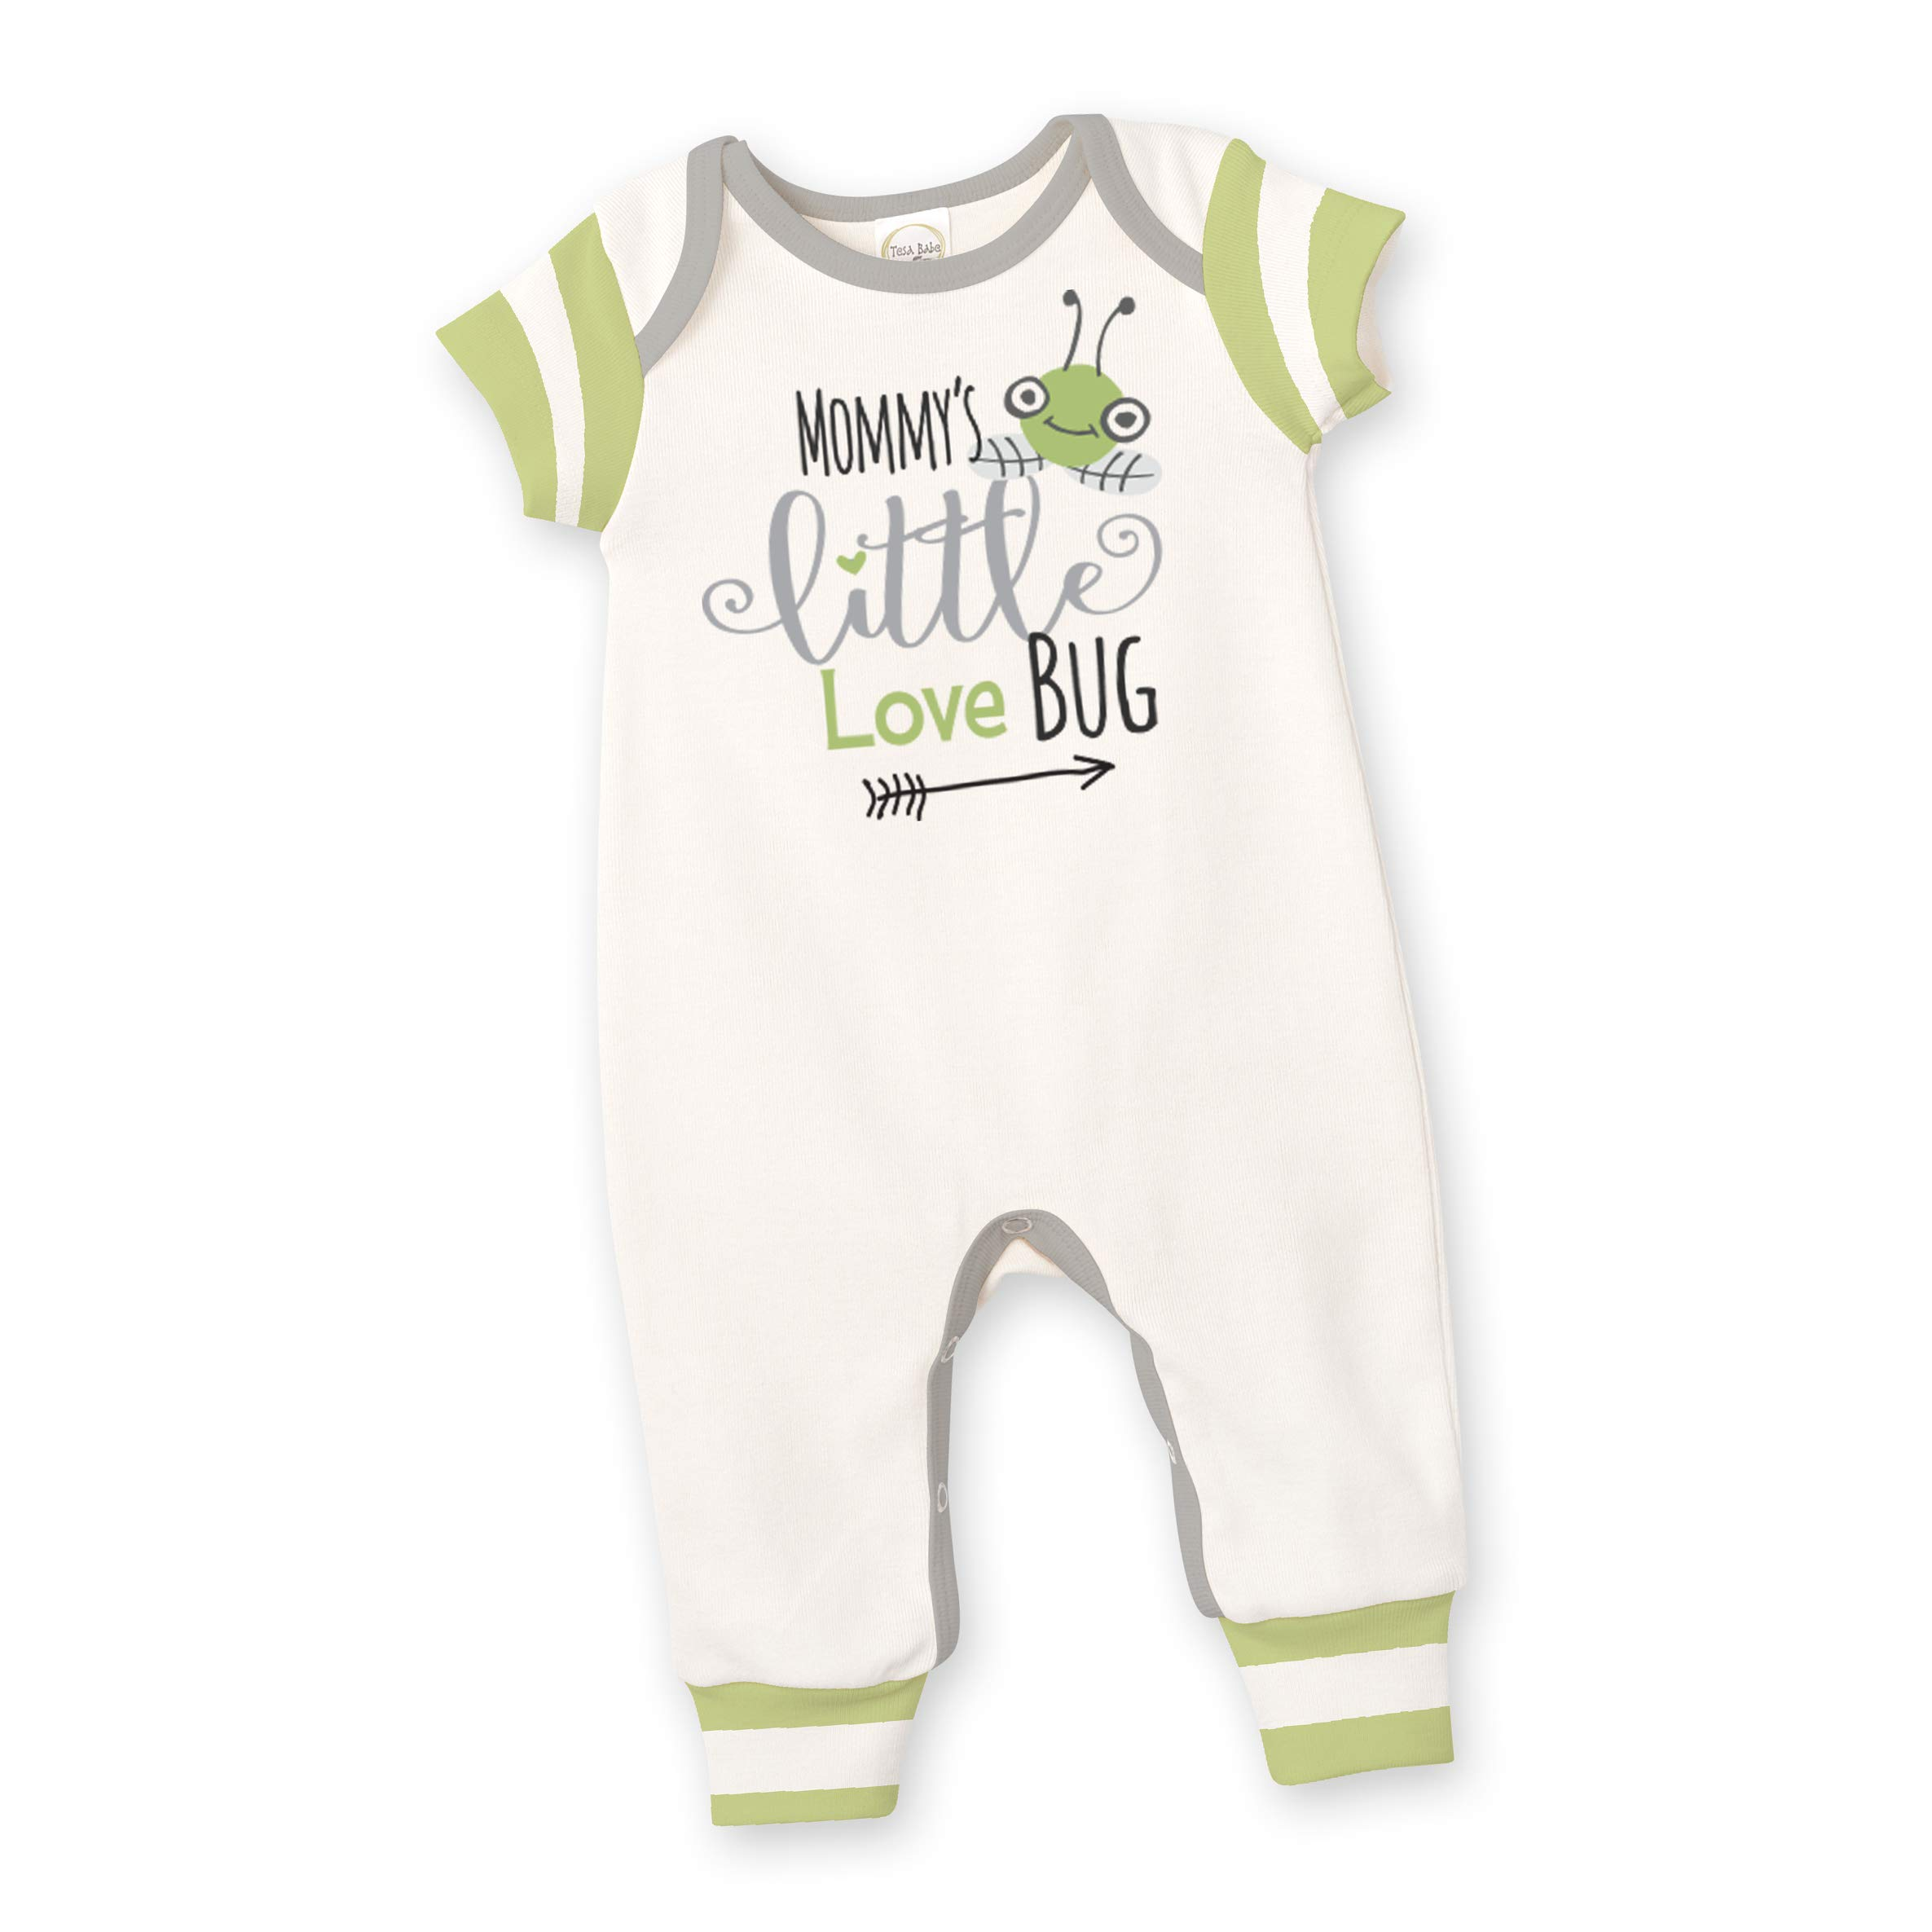 Tesa Babe Father's Day Mother's Day Baby Romper, Newborn & Baby Boy Girl Cotton Jumpsuit